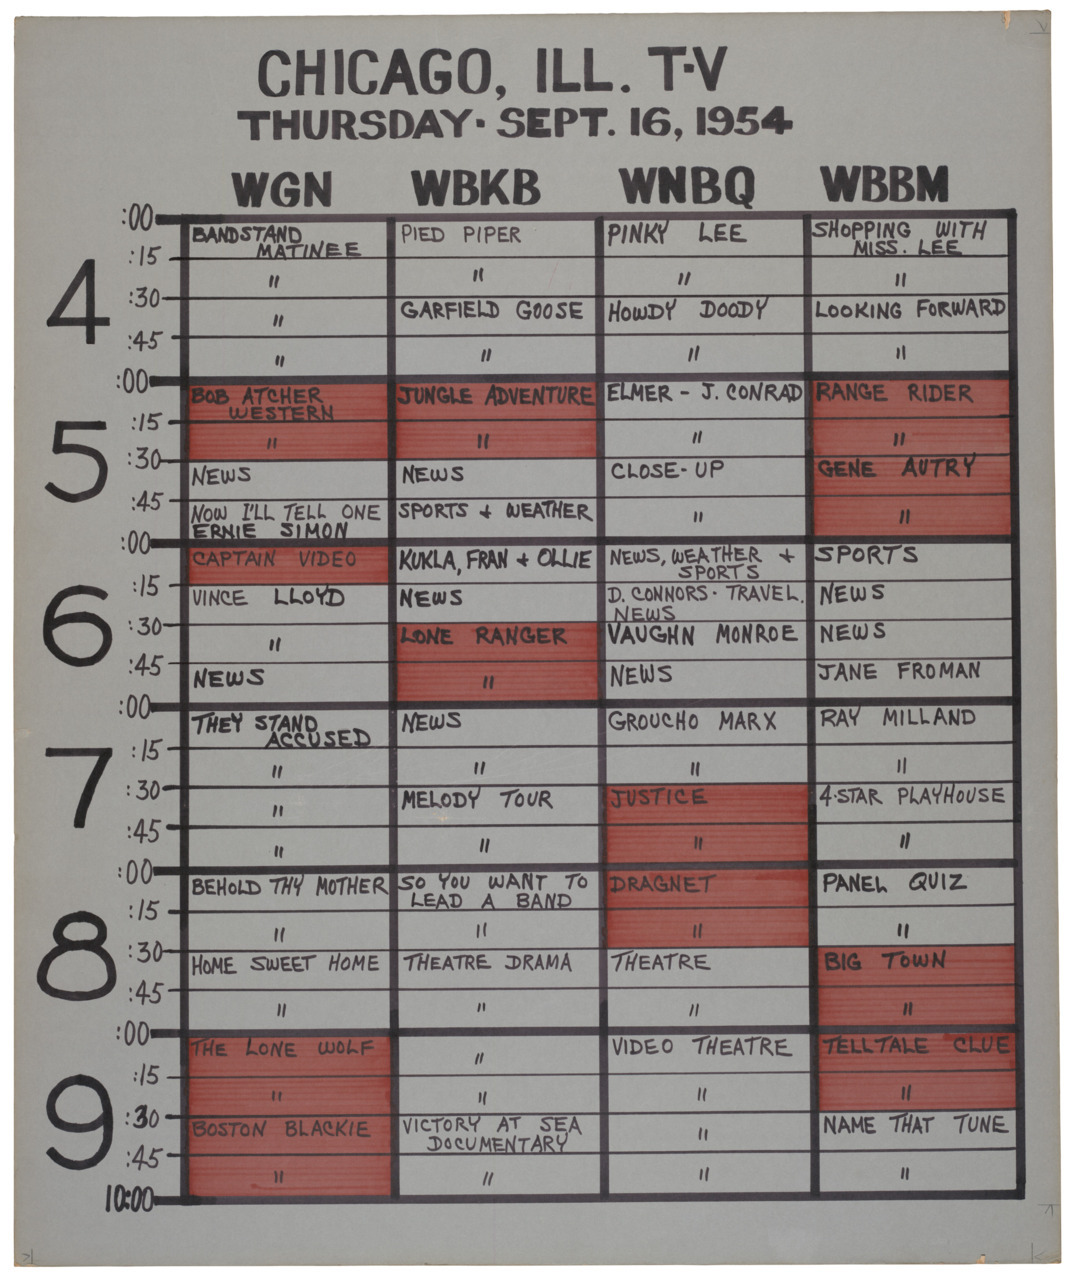 todaysdocument:  Chart Showing a Day of Television Programming in Chicago, 09/16/1954 An exhibit from the Senate Judiciary Special Subcommittee on Juvenile Delinquency during its investigation on the effect of television programming on juvenile delinquency.   Handwritten, people.